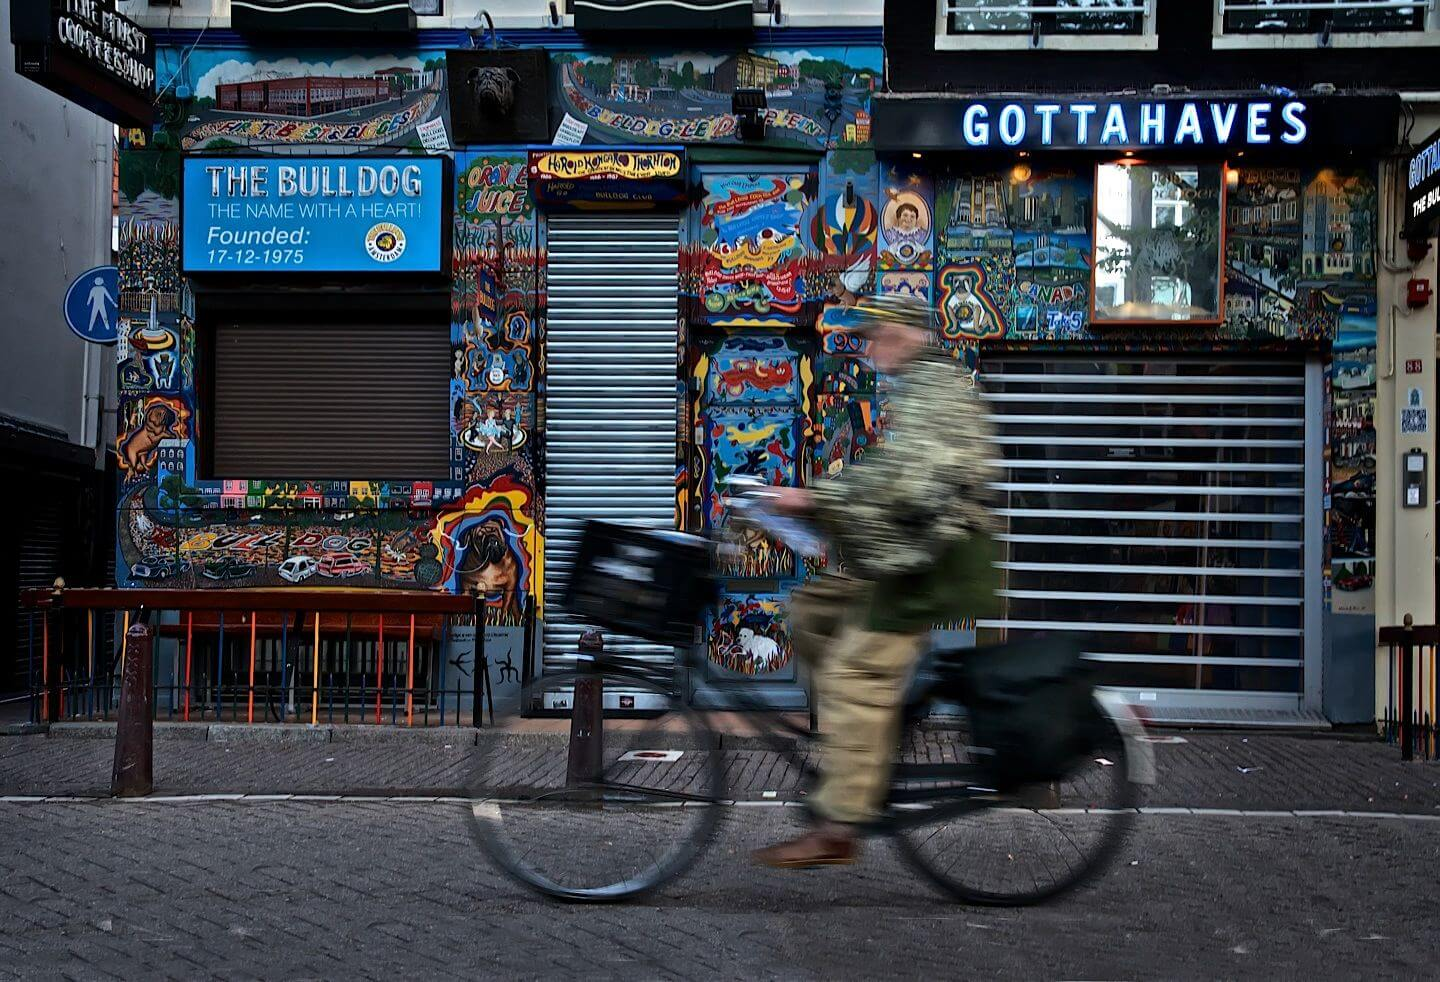 Man riding a bicycle along a Gottahaves Coffeeshop in Amsterdam